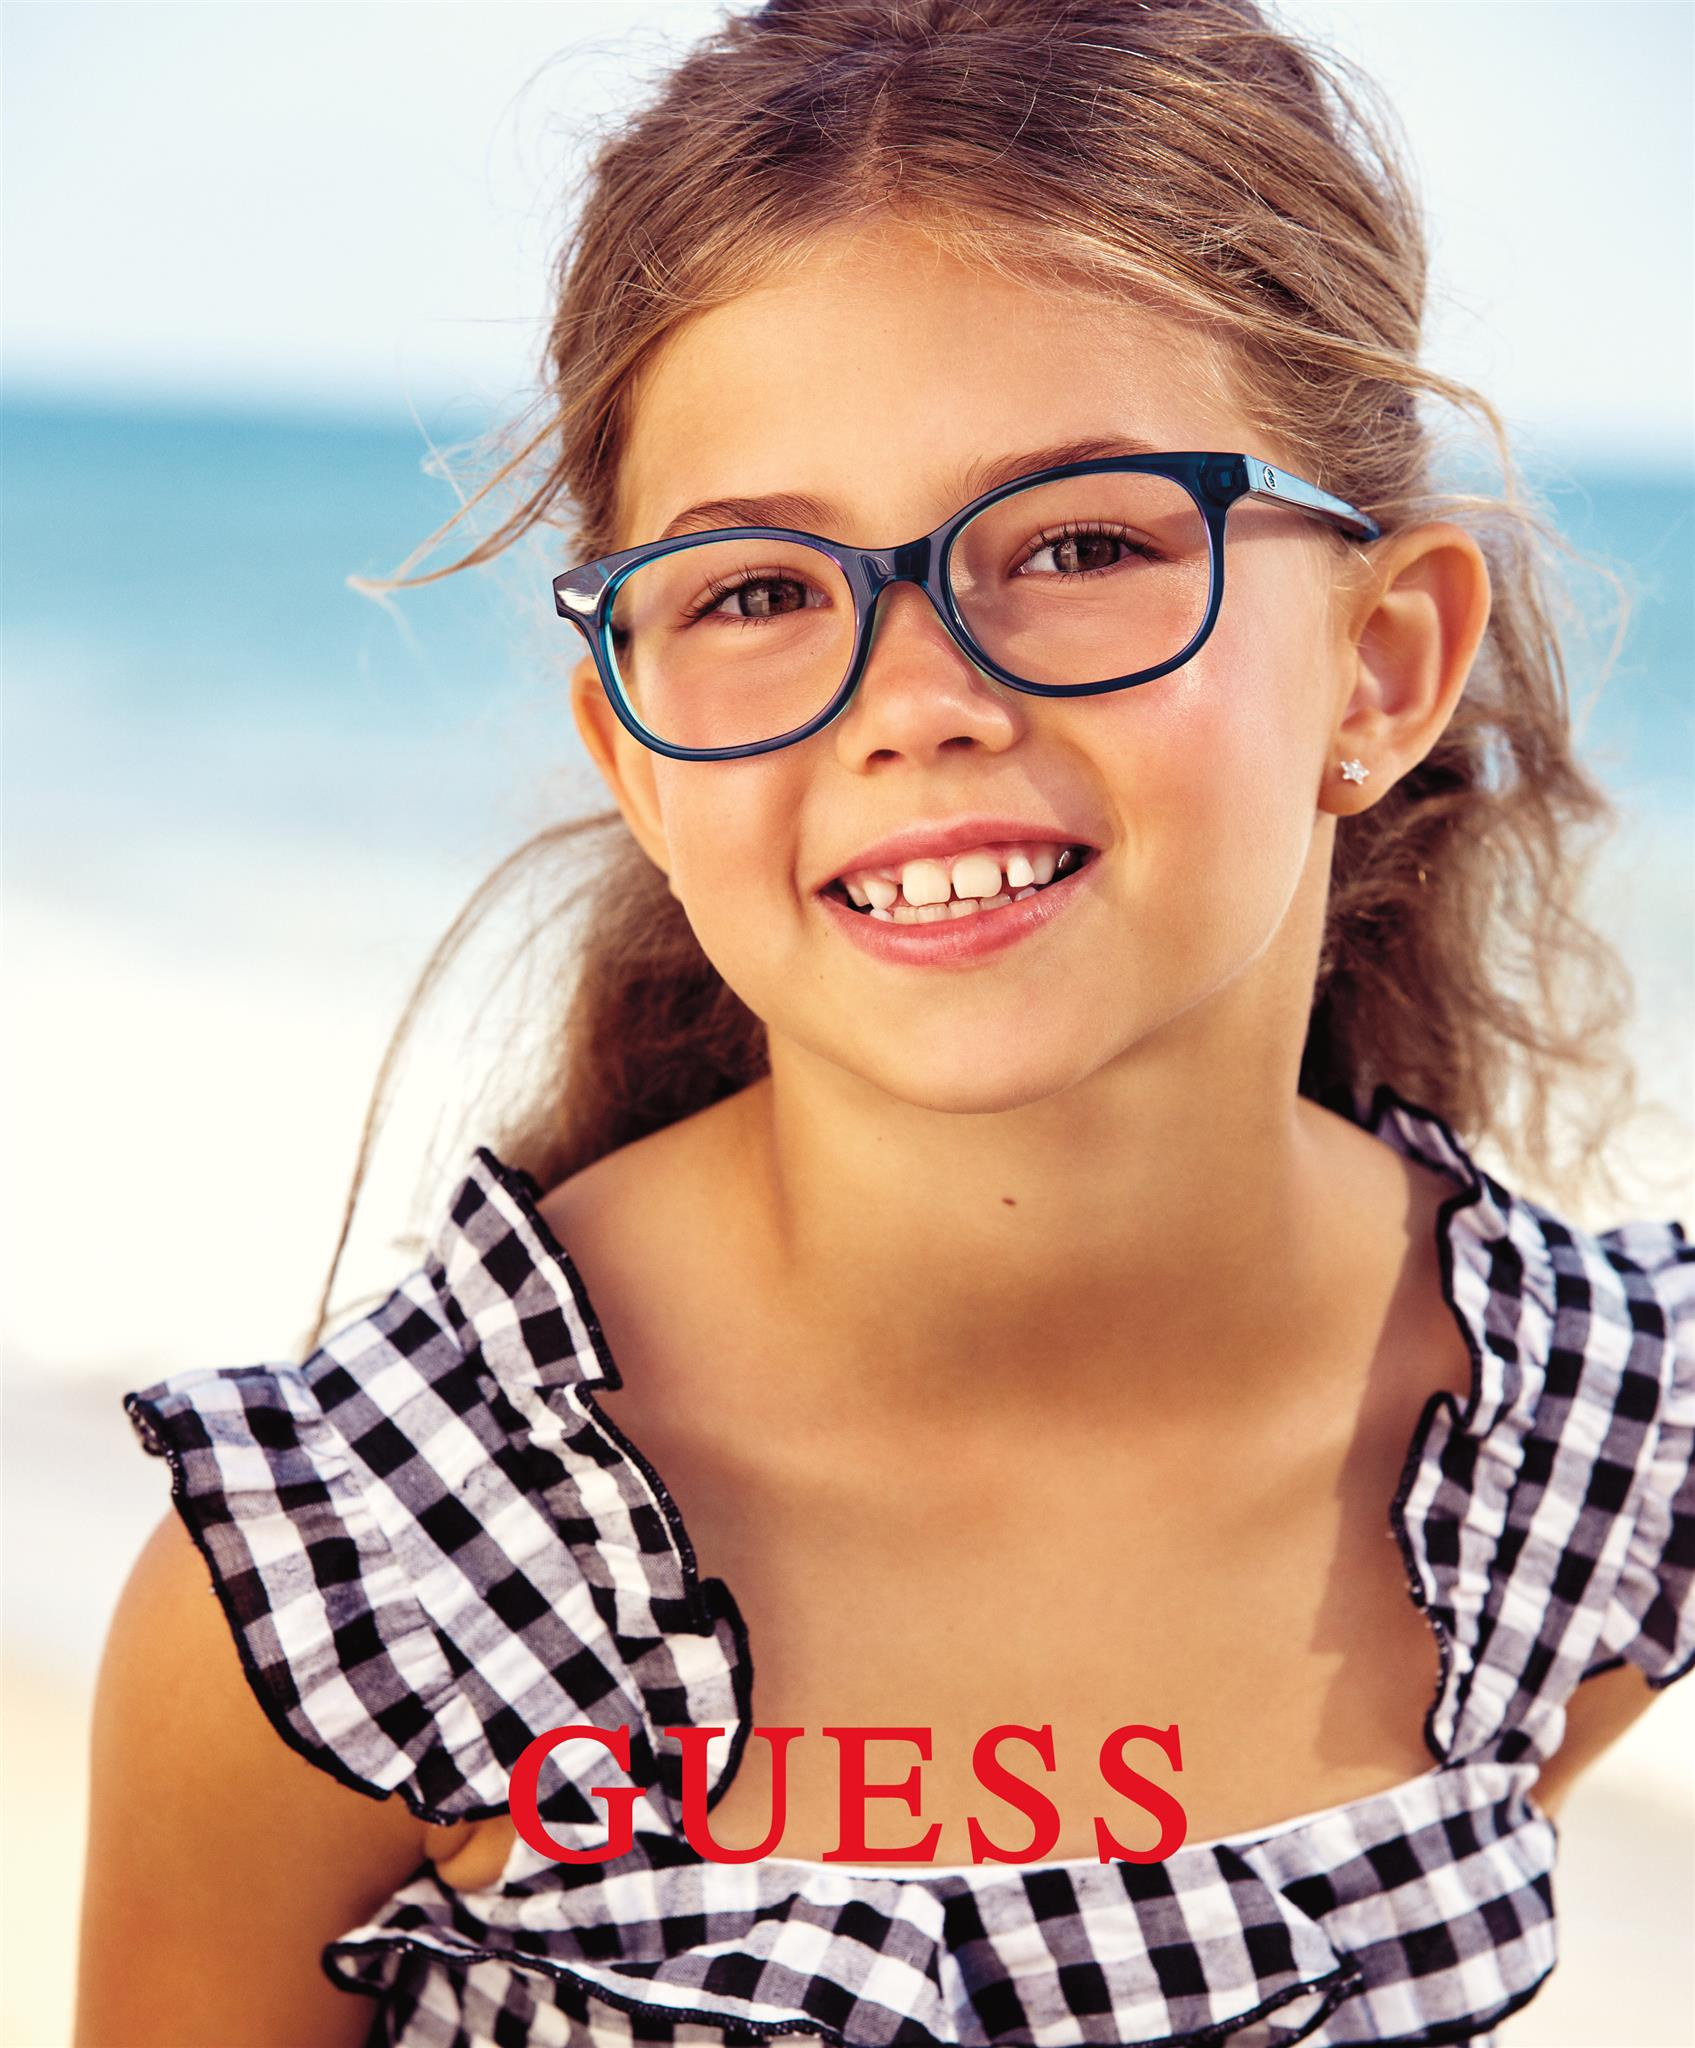 599_GUESS_Kids_Sp18_V30